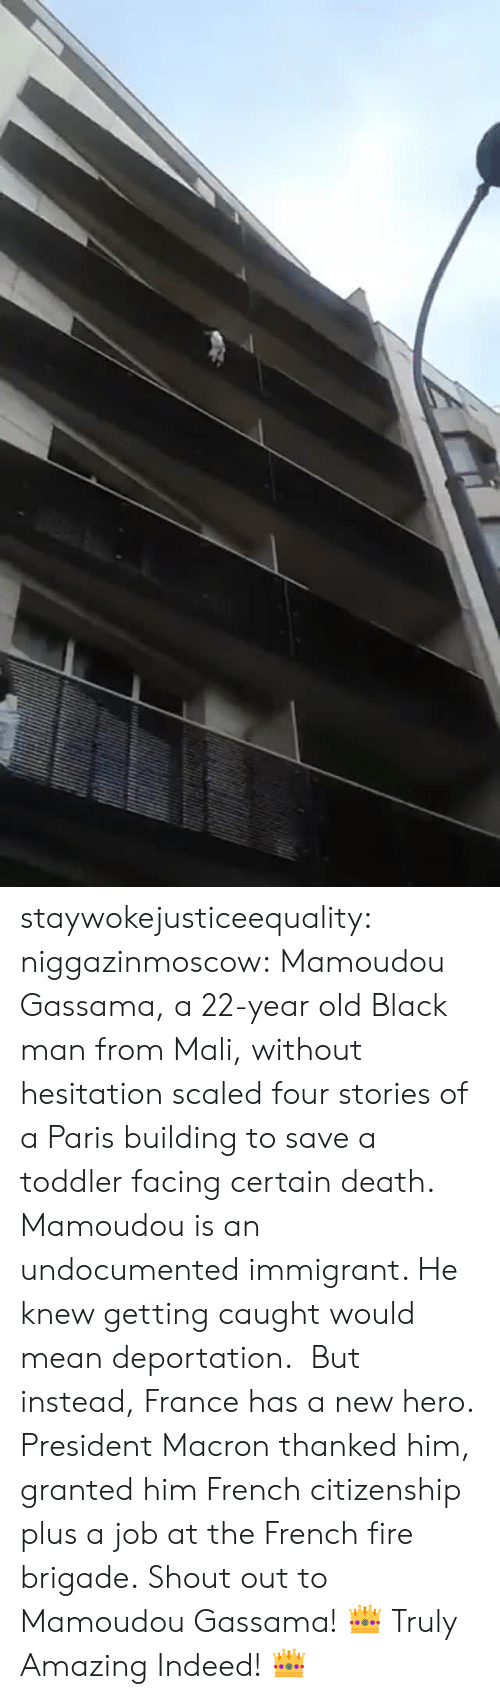 mali: staywokejusticeequality:  niggazinmoscow:  Mamoudou Gassama, a 22-year old Black man from Mali, without hesitation   scaled four stories of a Paris building to save a toddler facing certain death. Mamoudou is an undocumented immigrant. He knew getting caught would mean deportation. But instead, France has a new hero. President Macron thanked him, granted him French citizenship plus a job at the French fire brigade. Shout out to Mamoudou Gassama!    👑 Truly Amazing Indeed! 👑